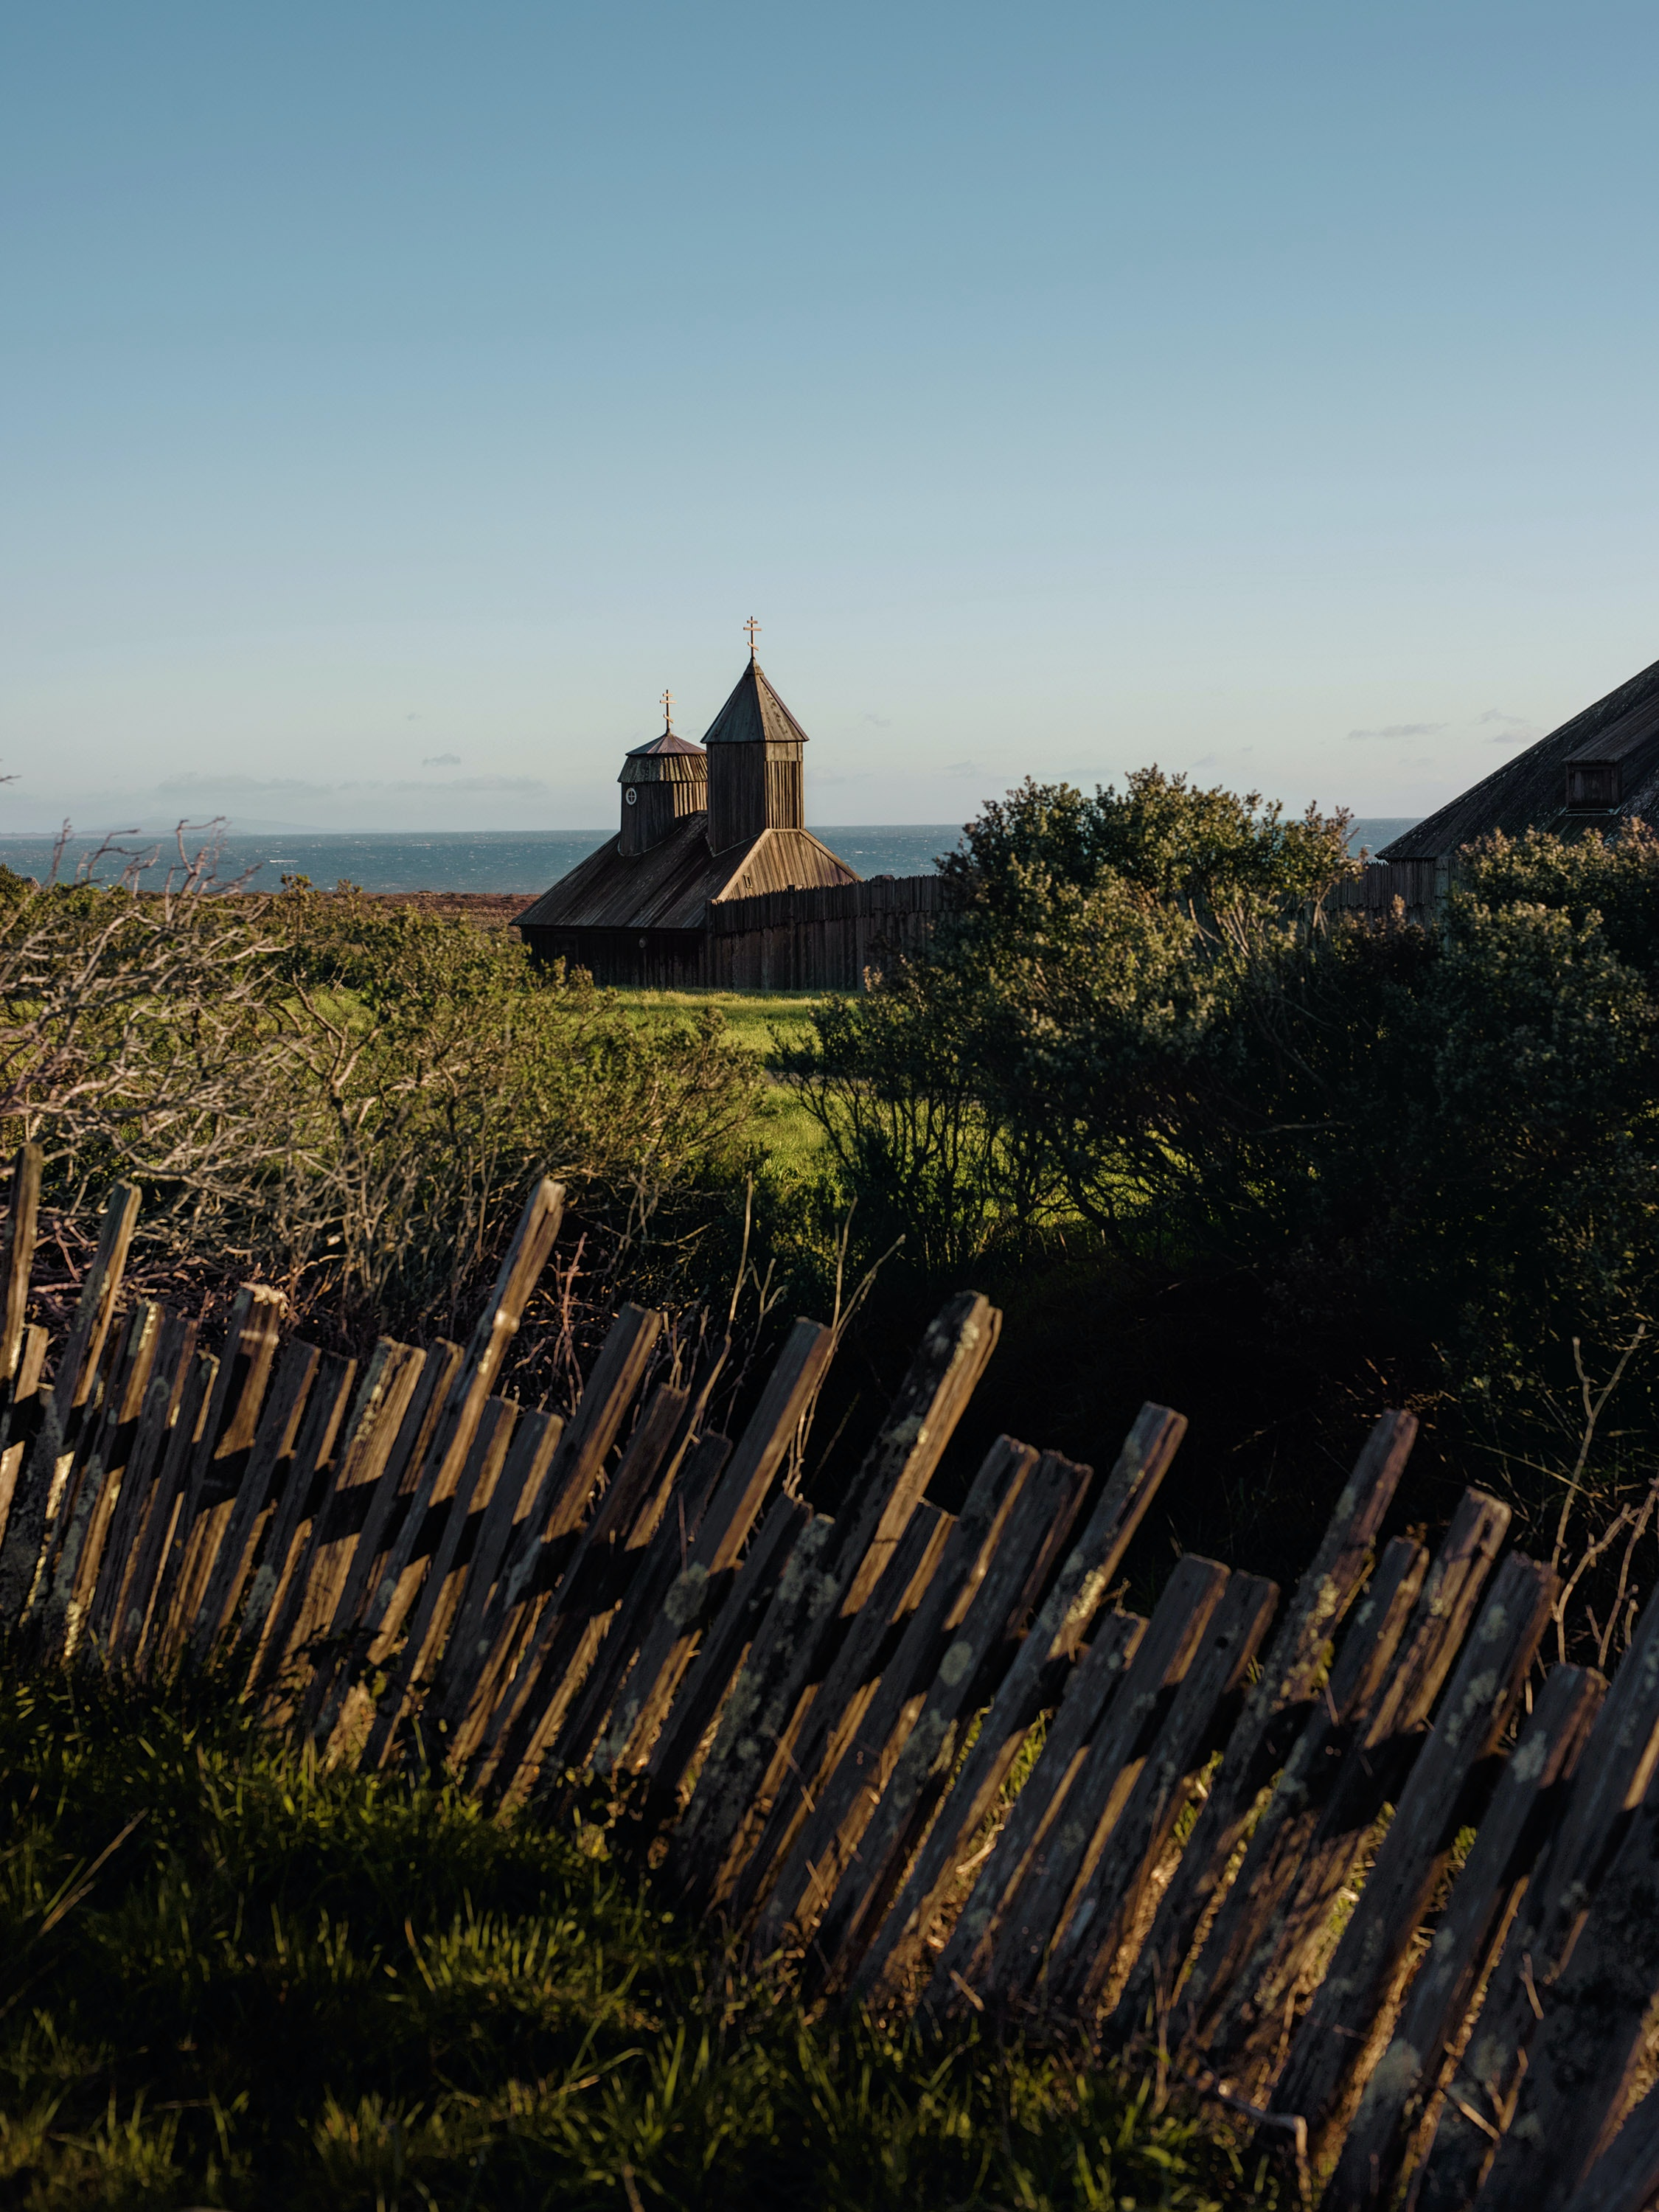 Stopping for a stroll at Fort Ross State Historic Park in Sonoma County is one of the highlights of a Northern California road trip.